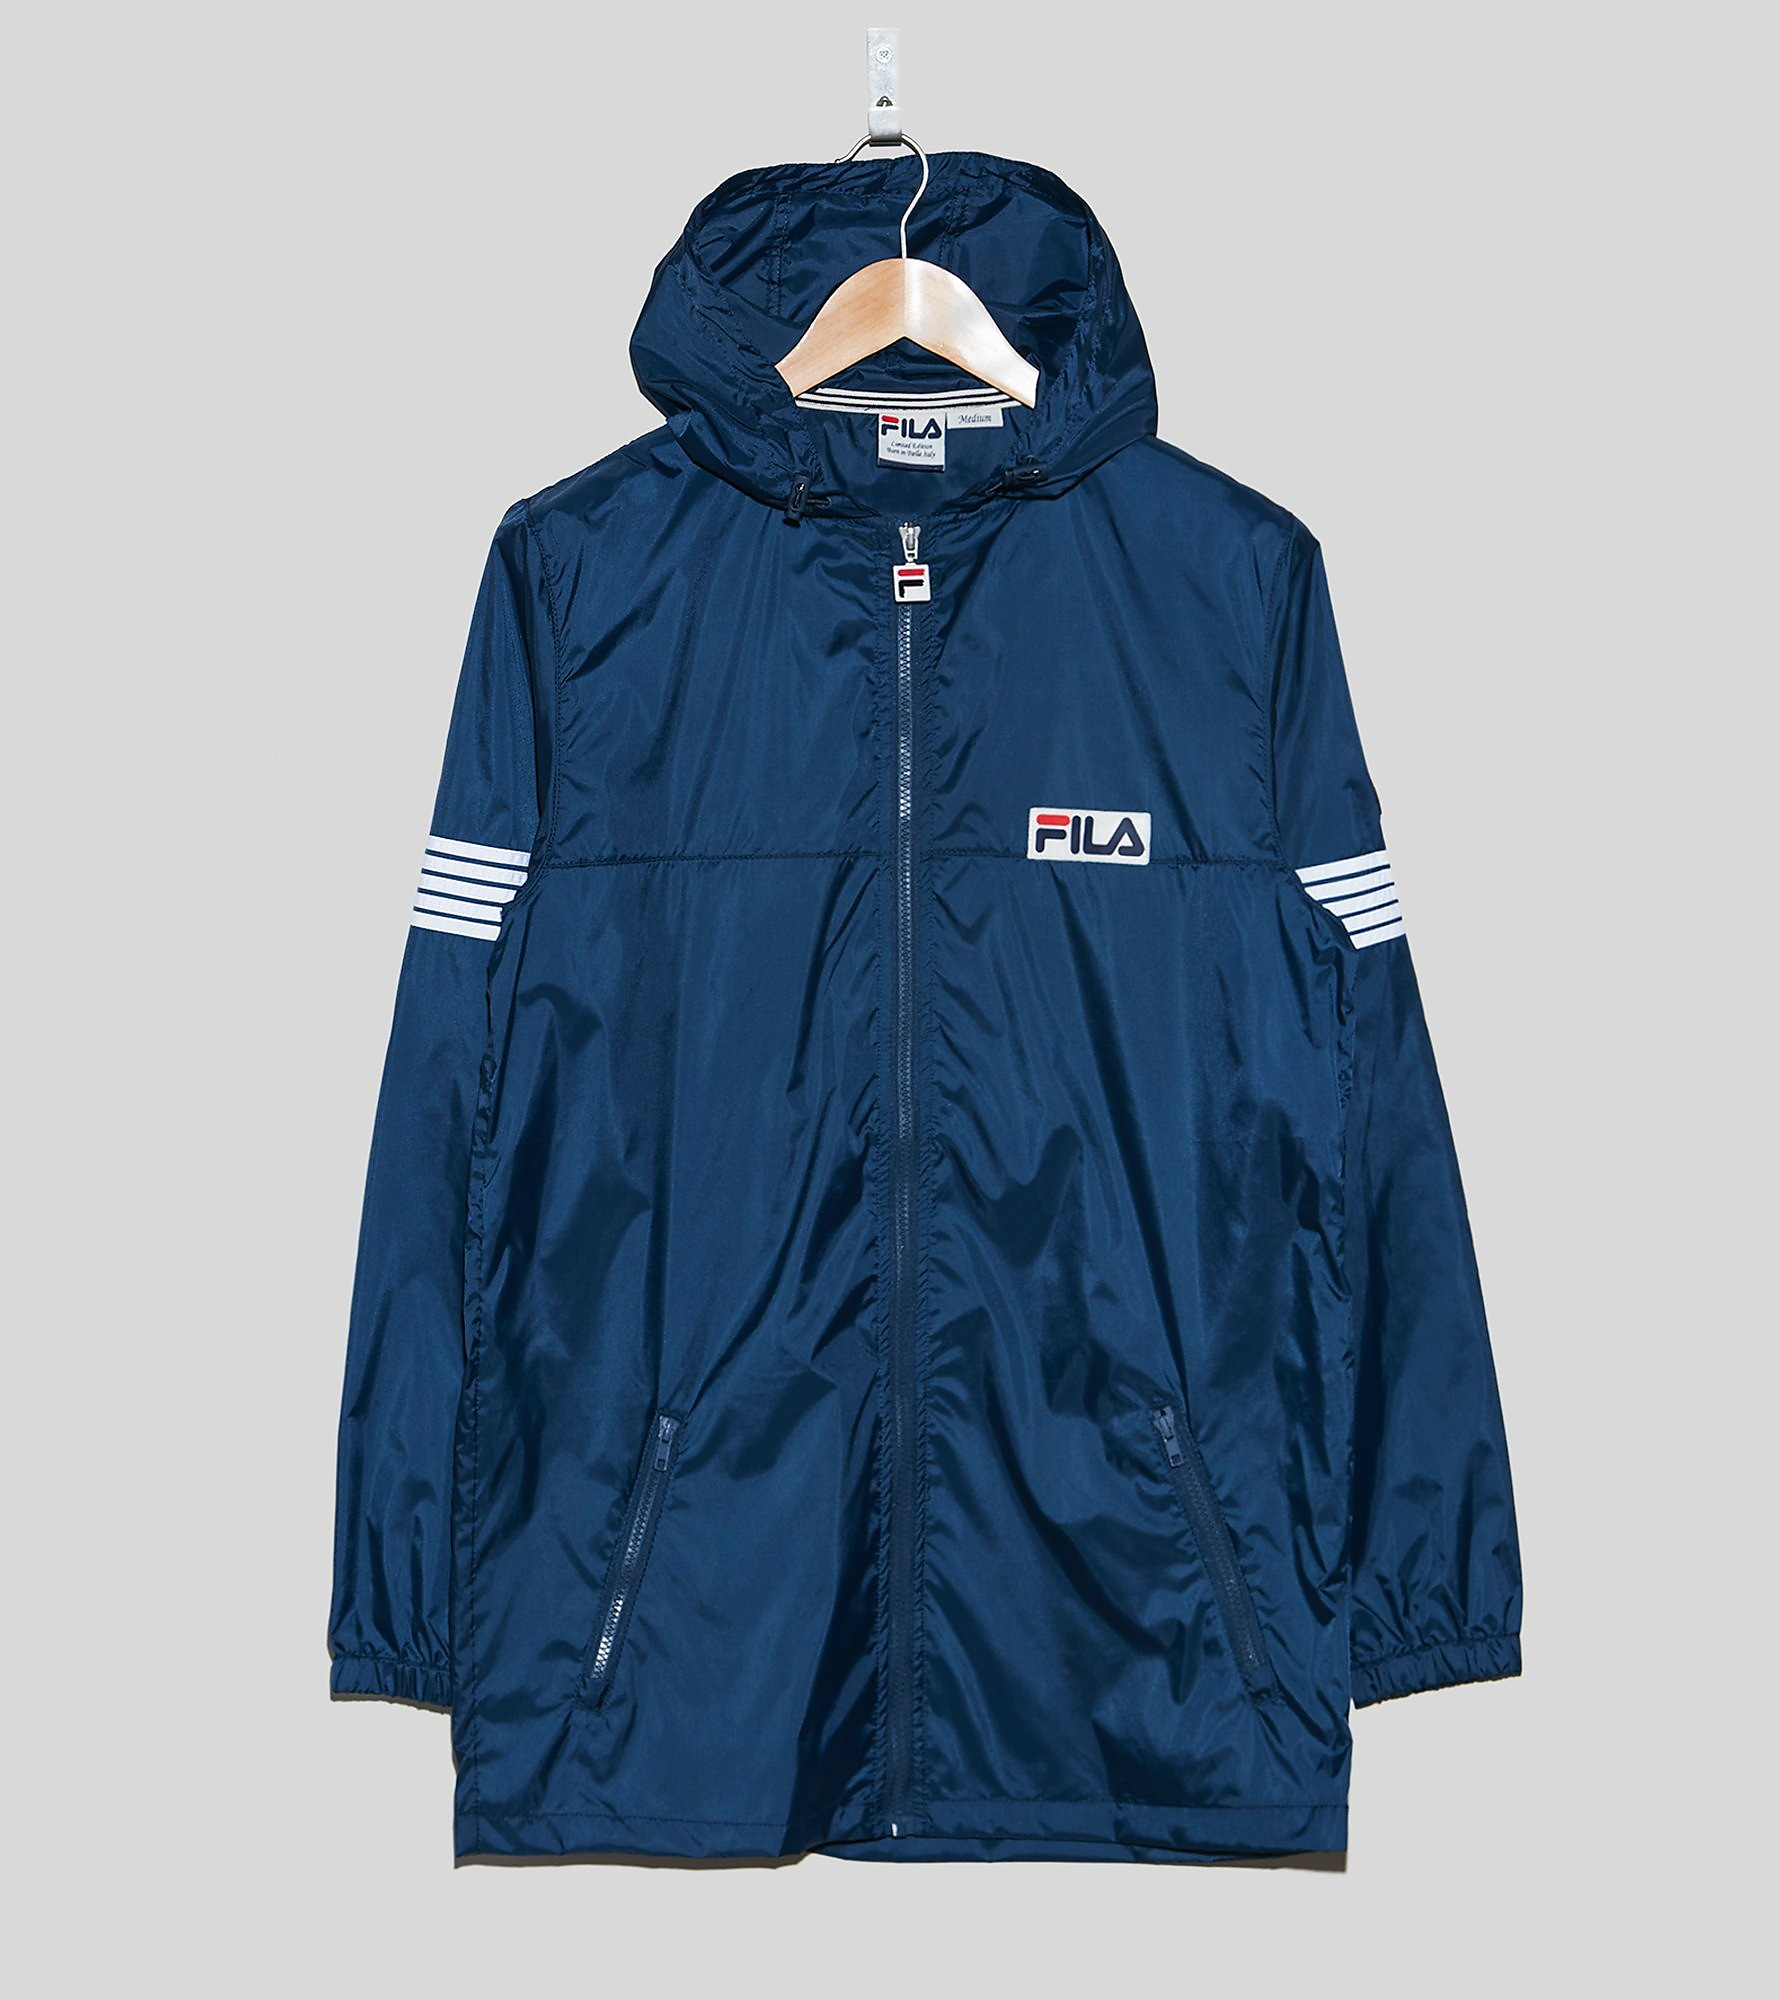 Fila Advantage Jacket - size? Exclusive